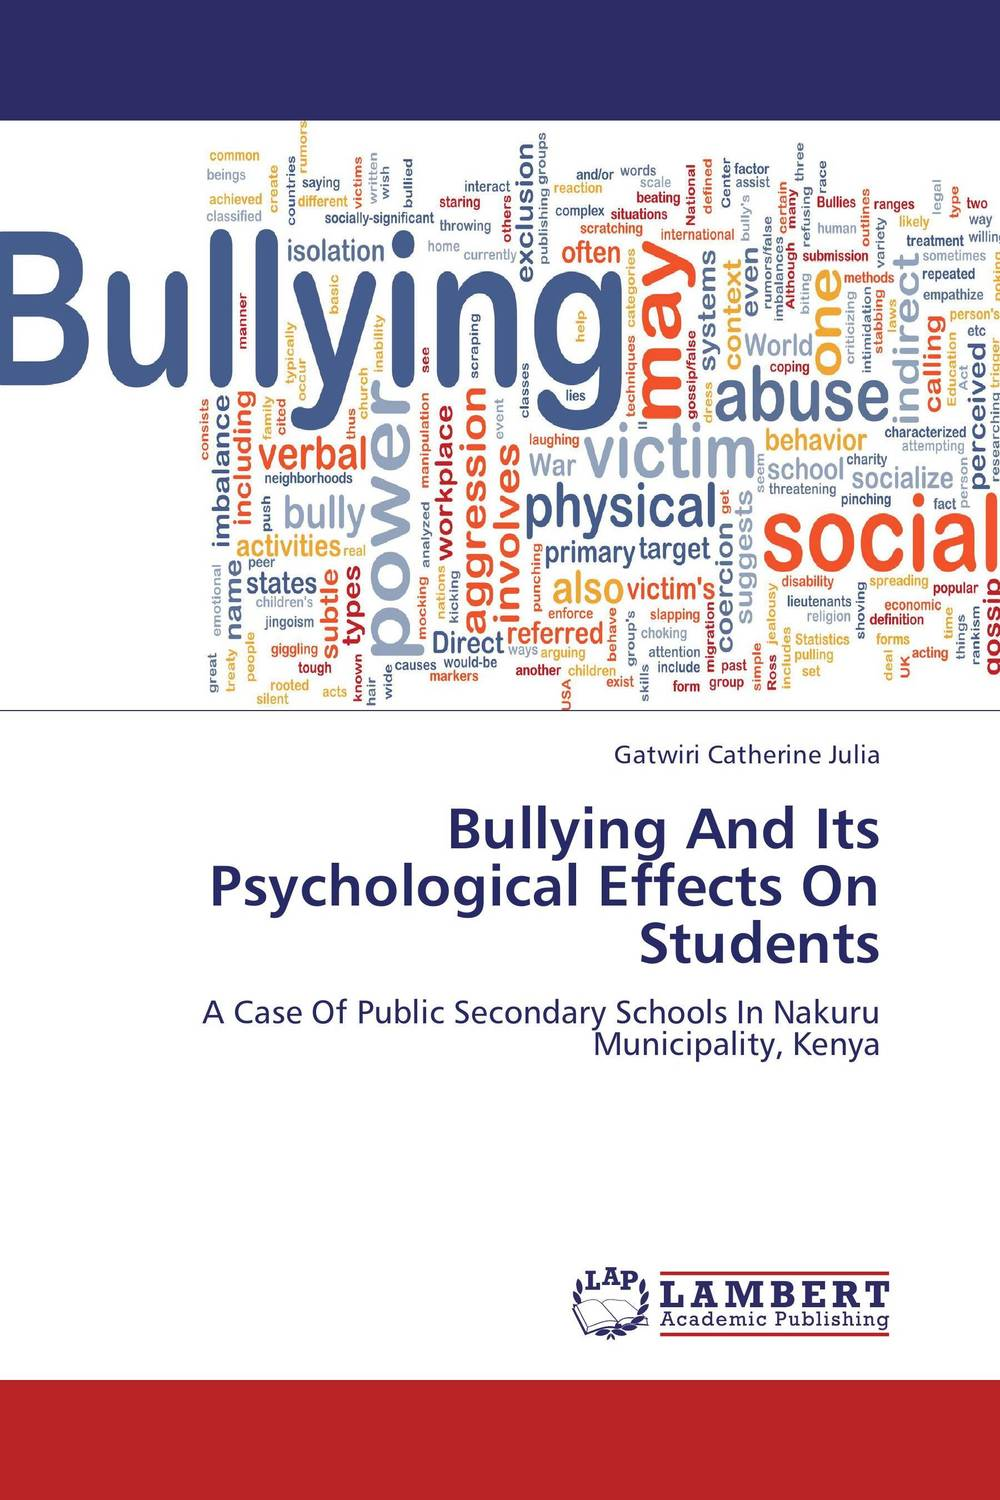 Bullying And Its Psychological Effects On Students  fritz ilongo workplace bullying as psychological violence in tertiary institutions